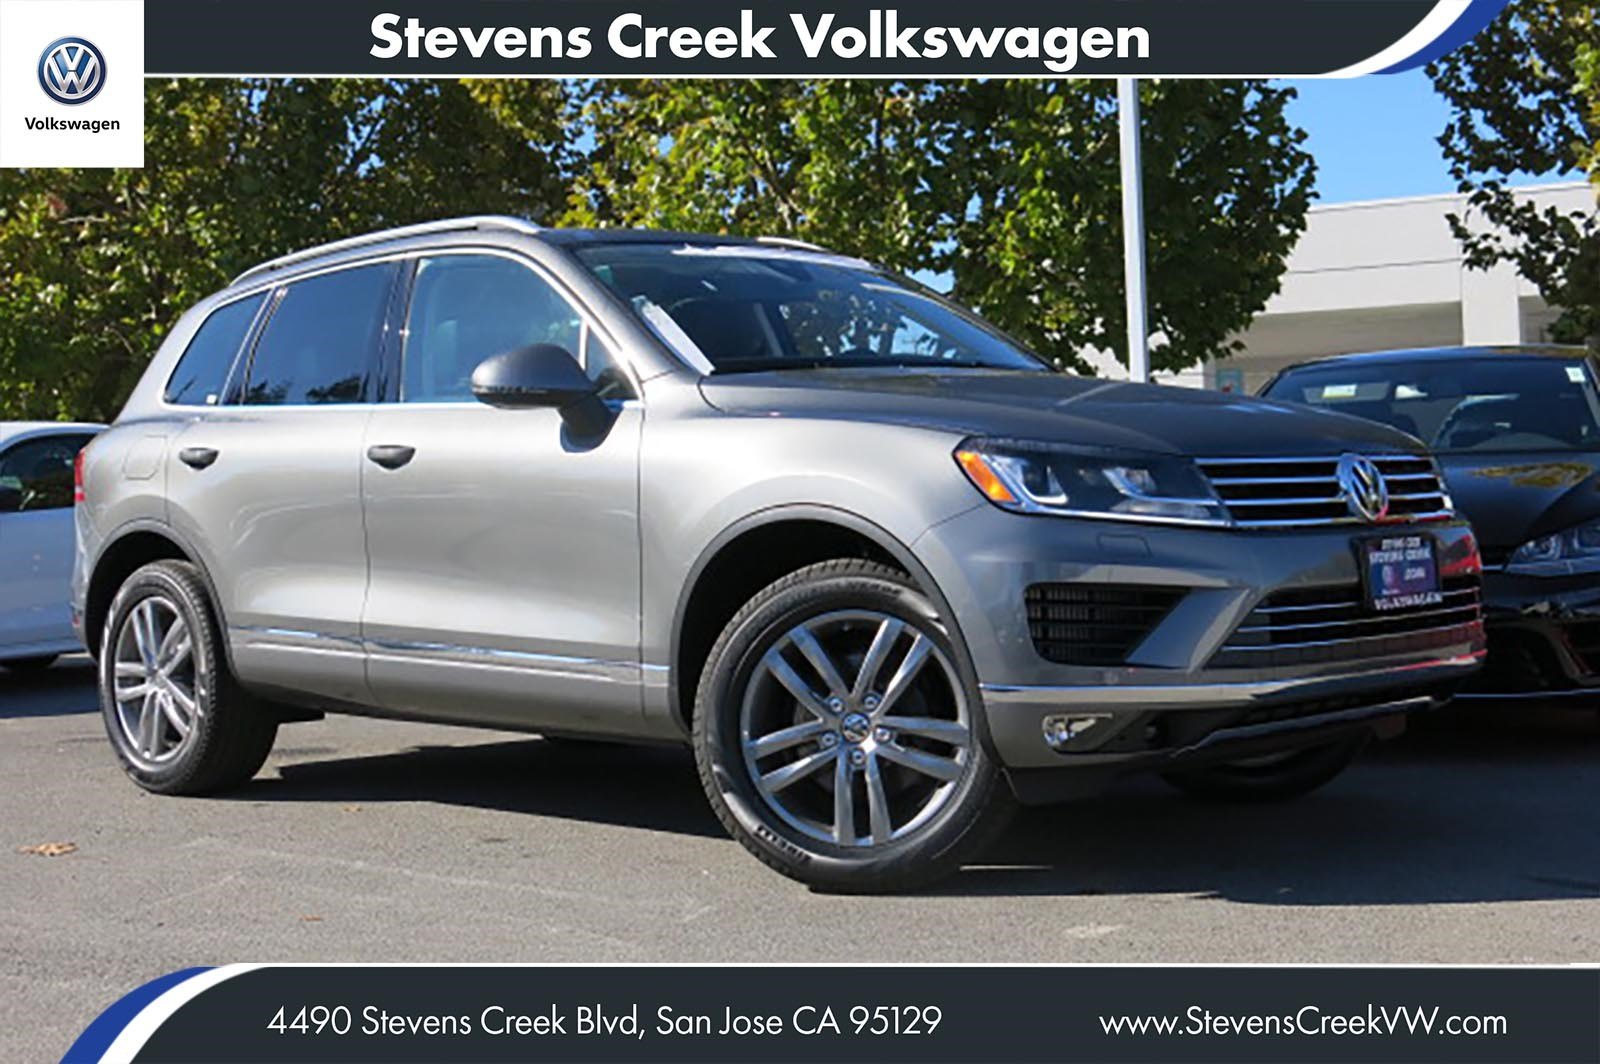 New 2016 Volkswagen Touareg Lux With Navigation & AWD VIN# GD001228 MSRP $59,005